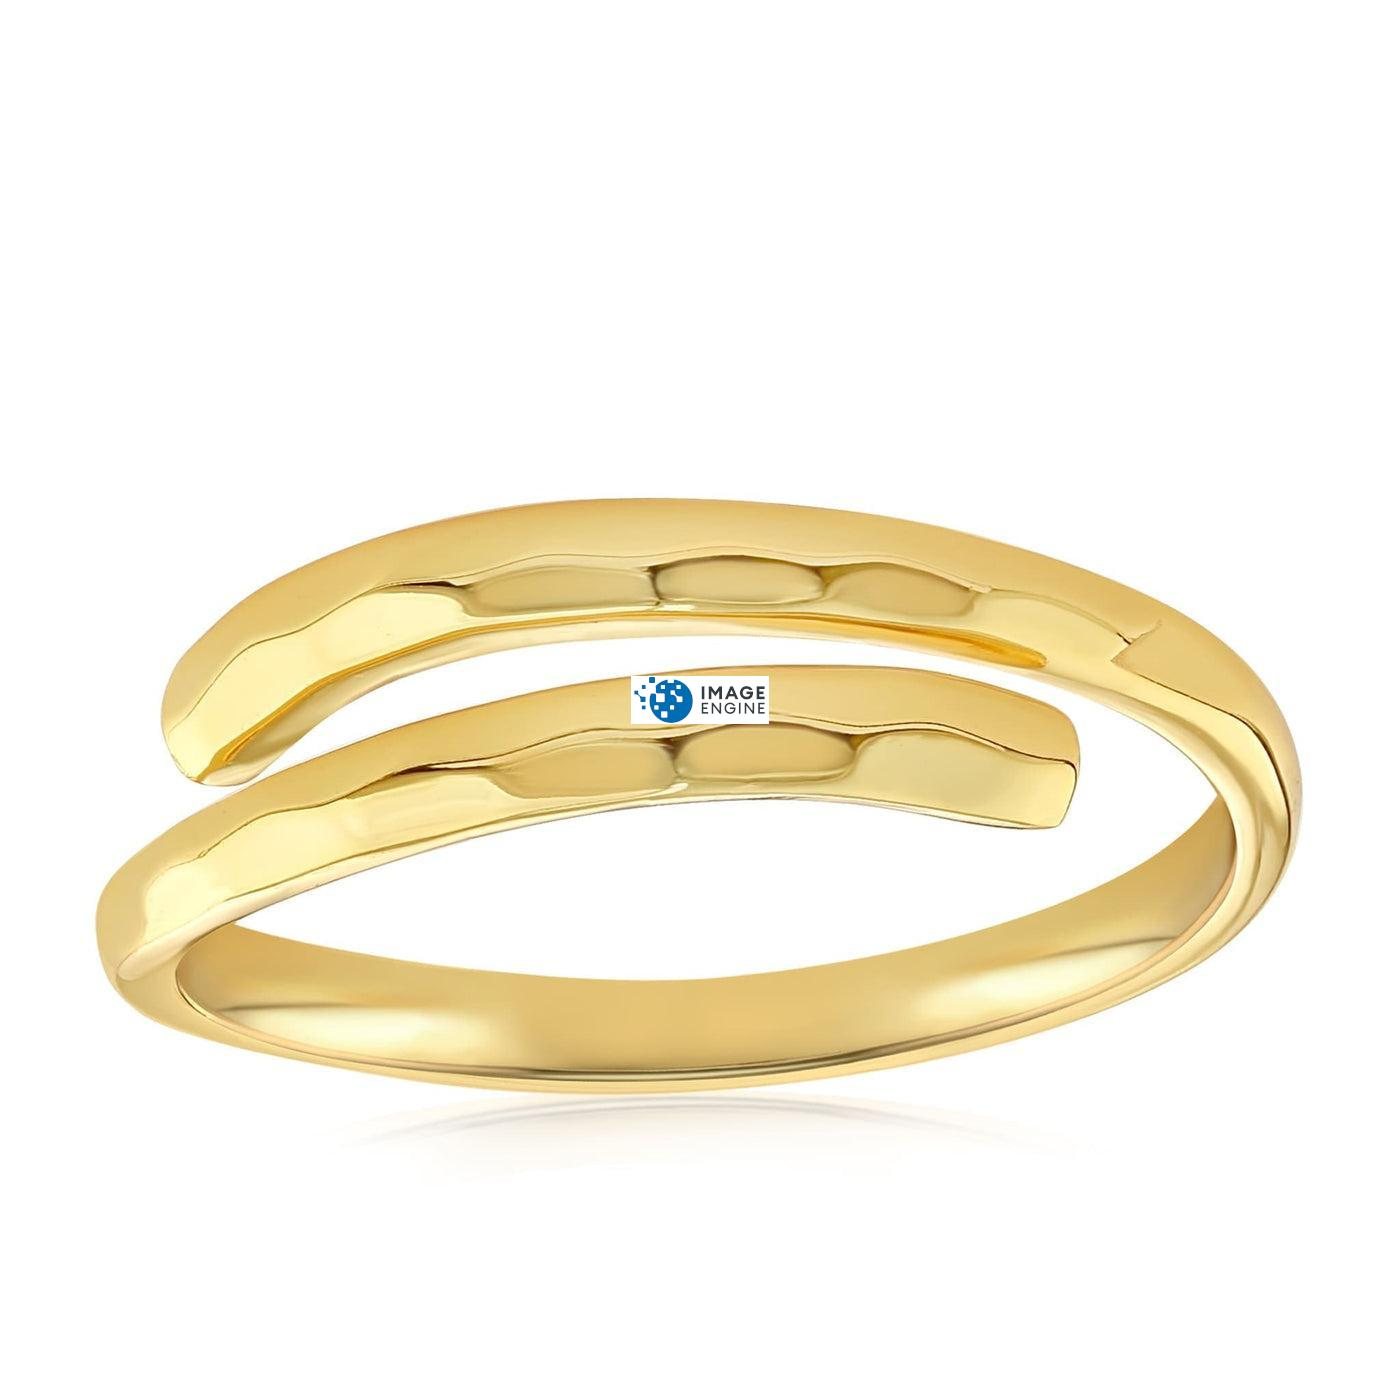 Minimalist Thumb Ring - Front View Facing Down - 18K Yellow Gold Vermeil